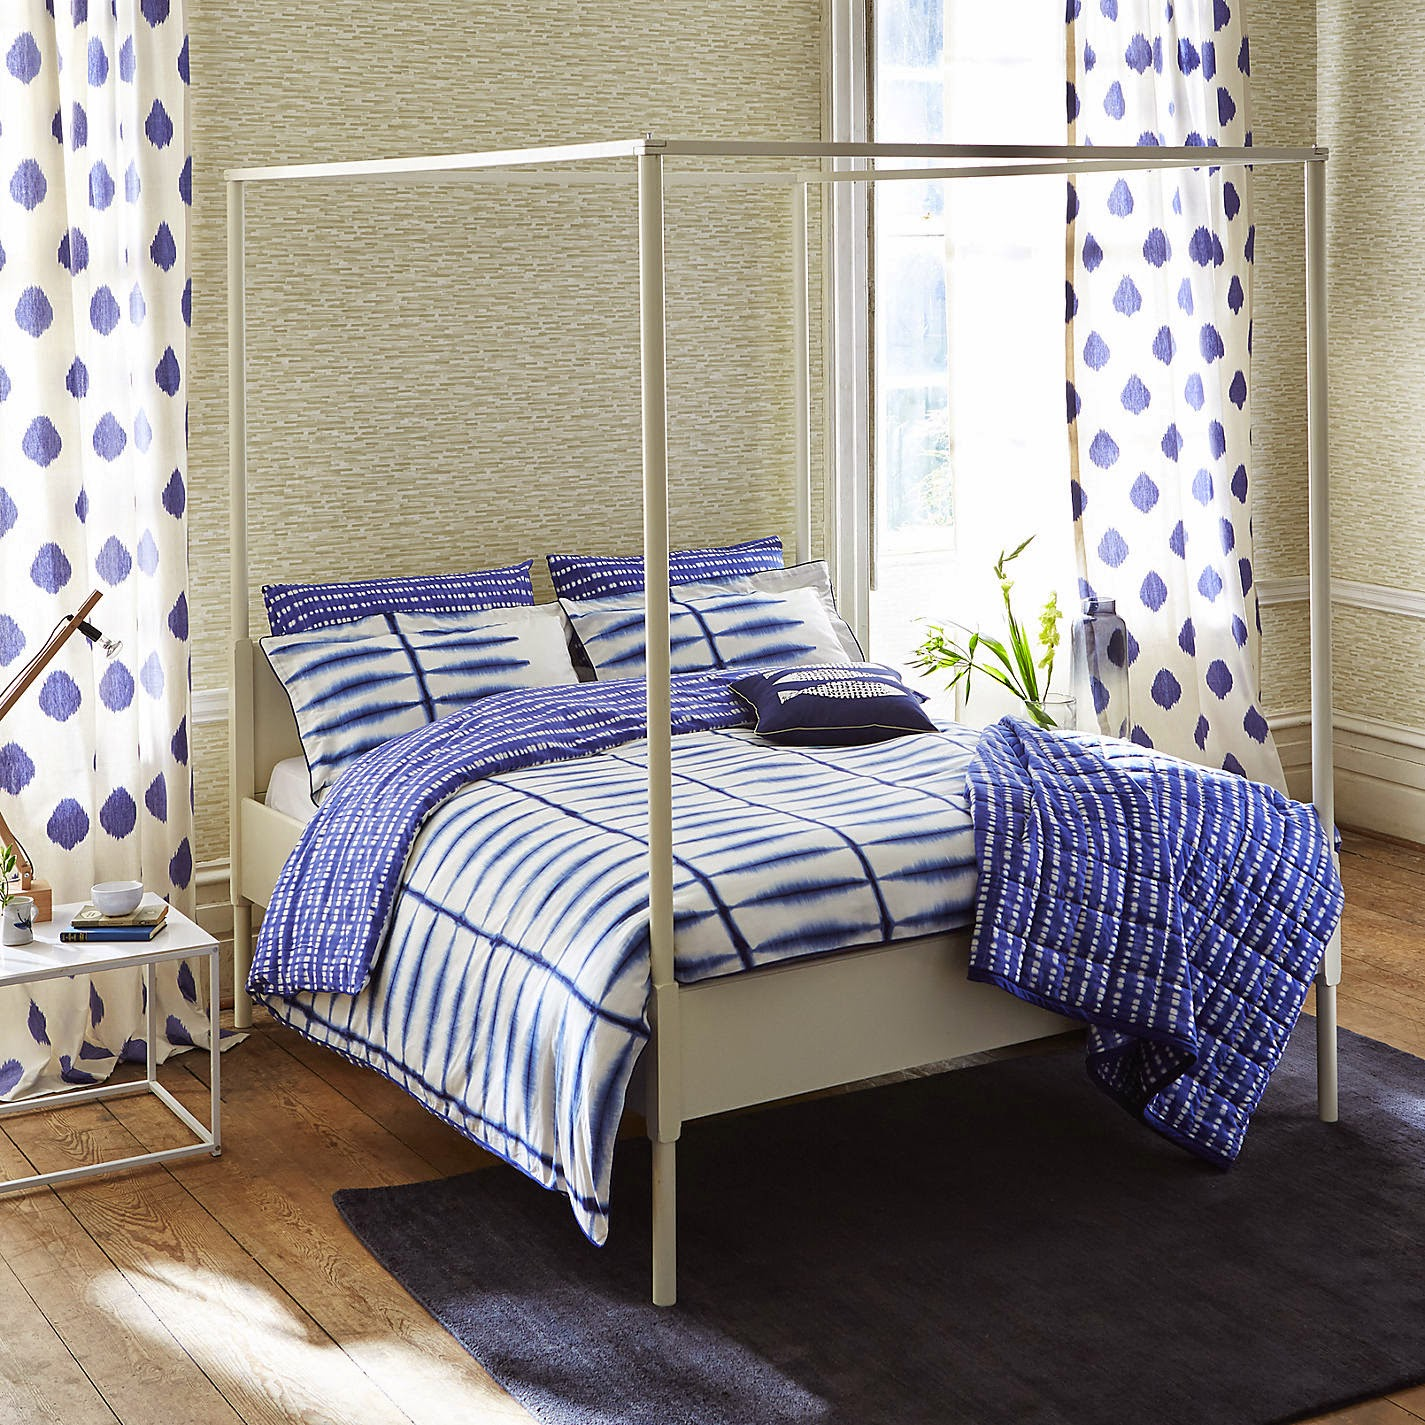 shibori bedding , shibori curtains